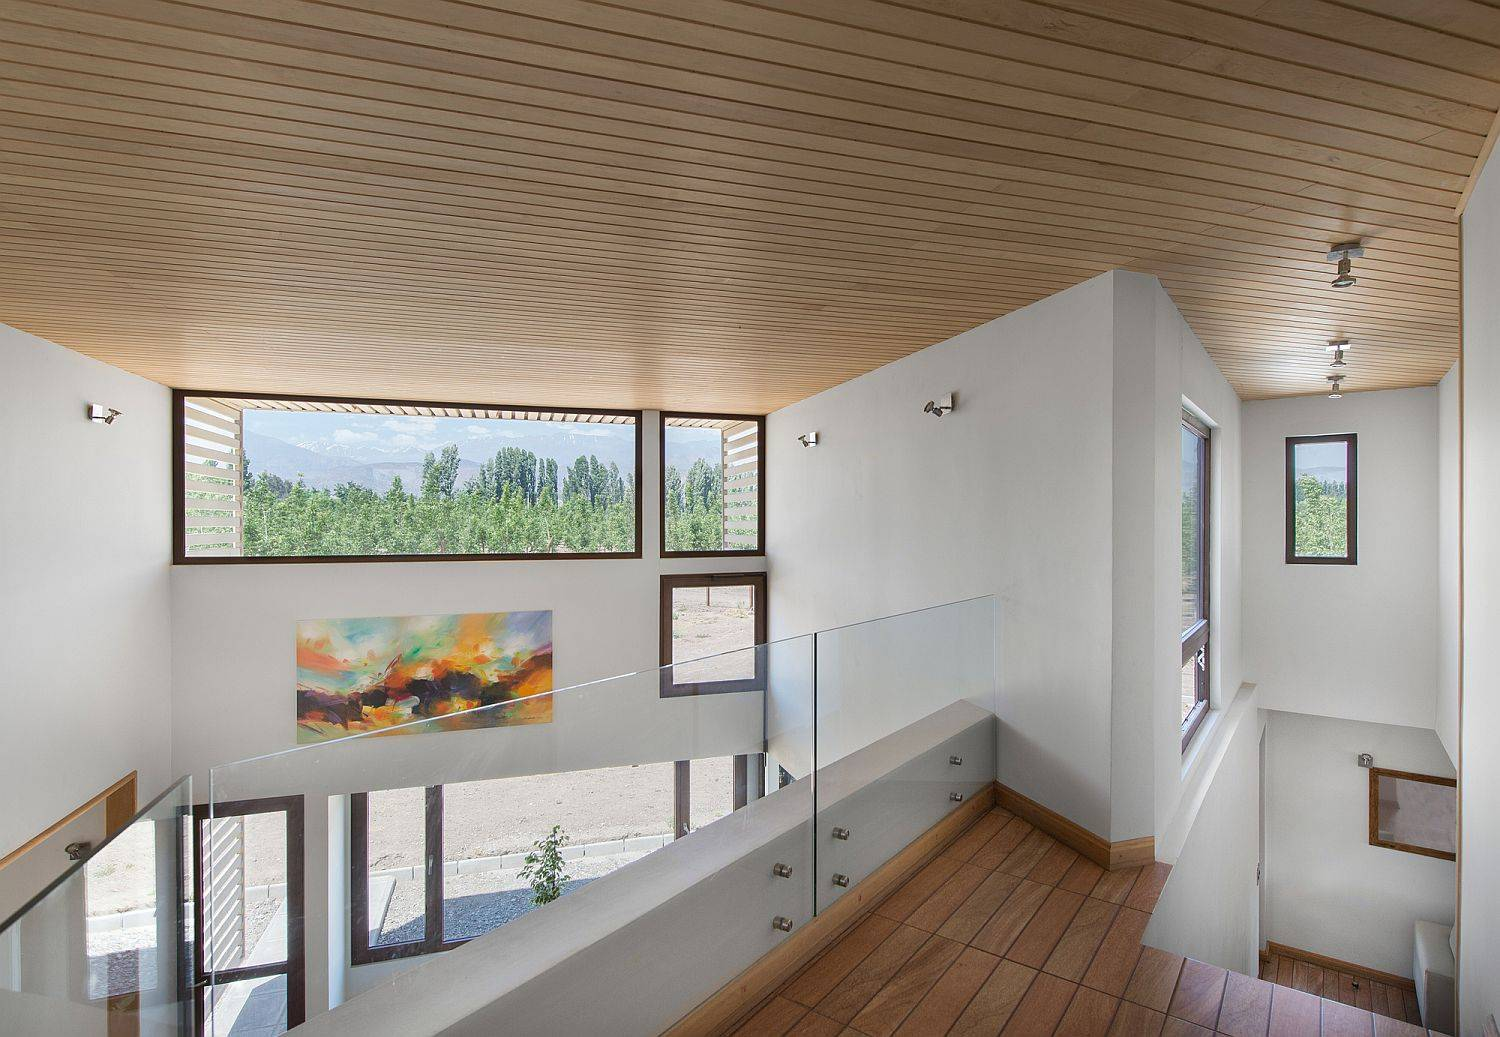 Clerestory-windows-for-one-level-can-act-as-windows-for-another-77082